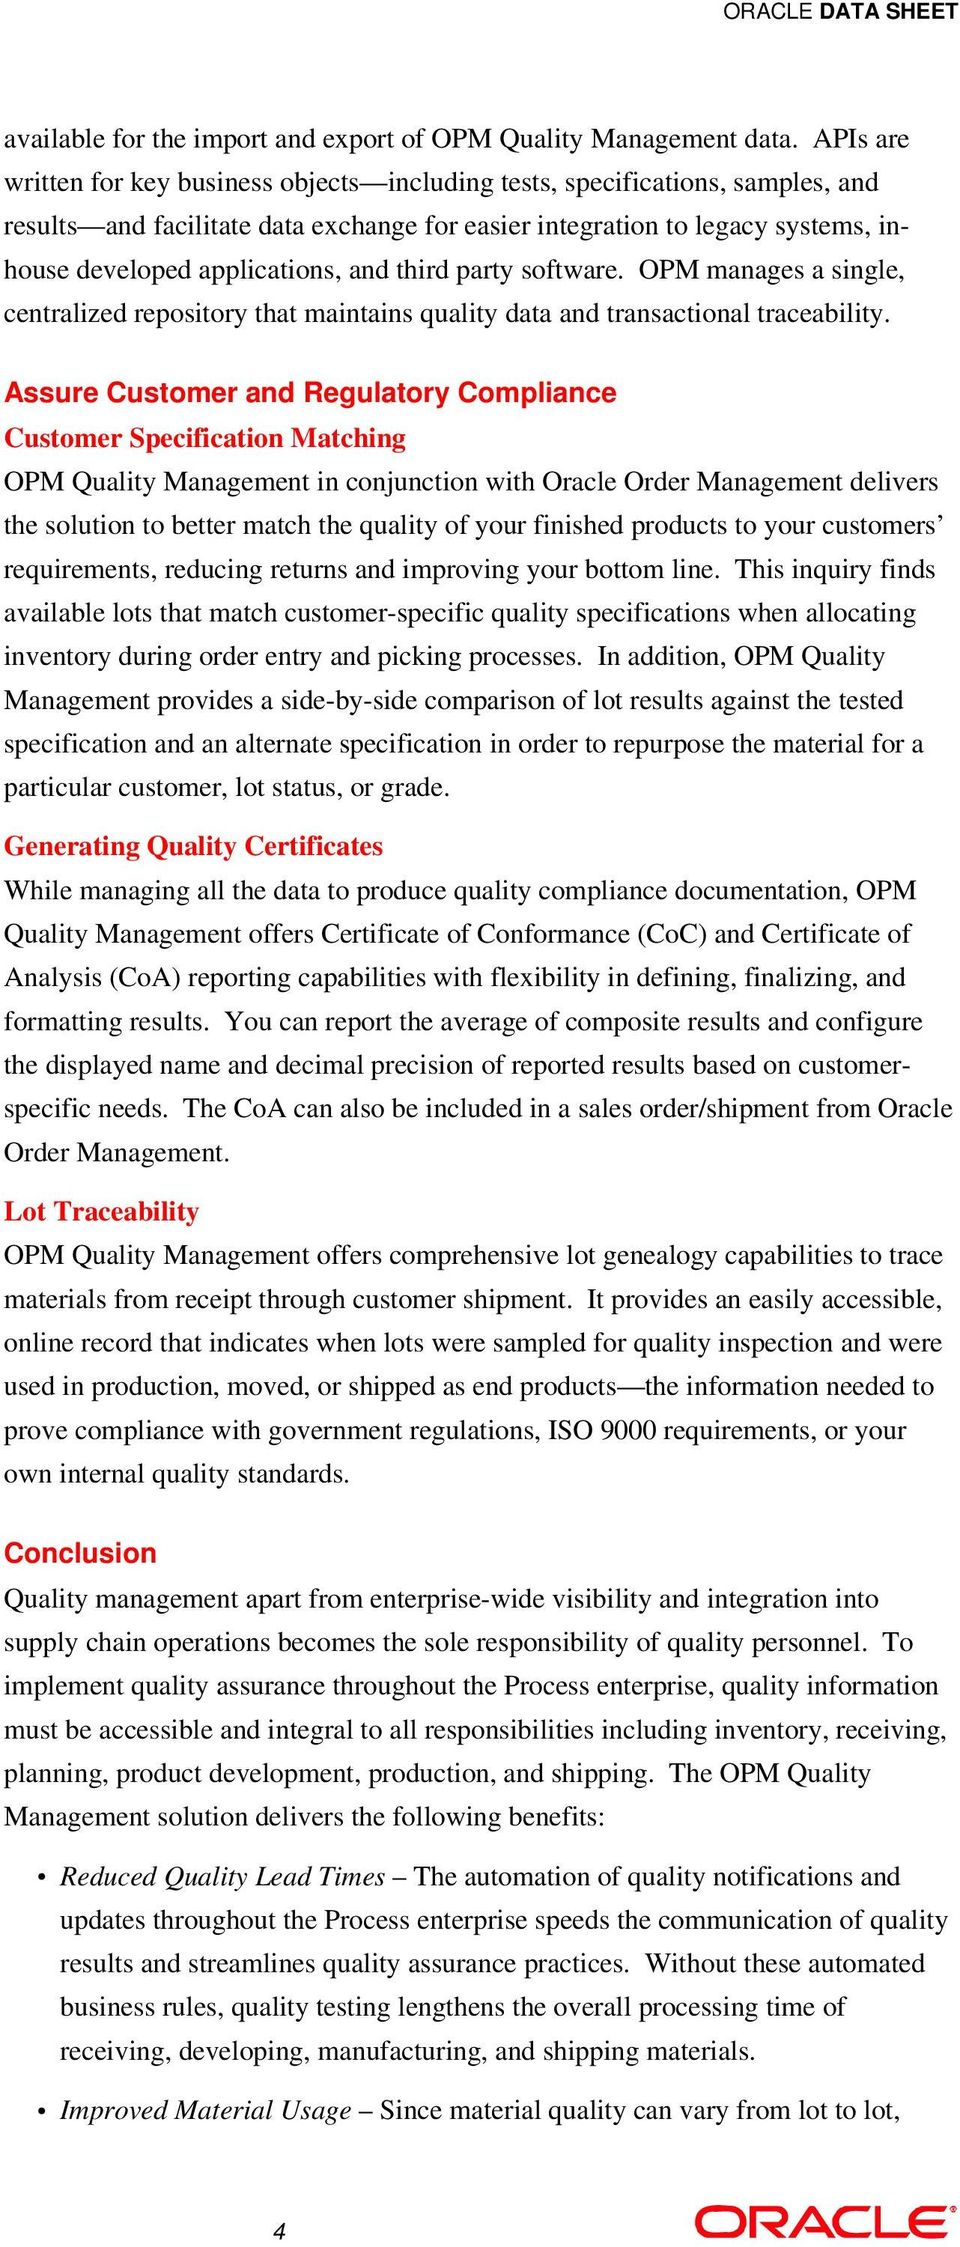 and third party software. OPM manages a single, centralized repository that maintains quality data and transactional traceability.